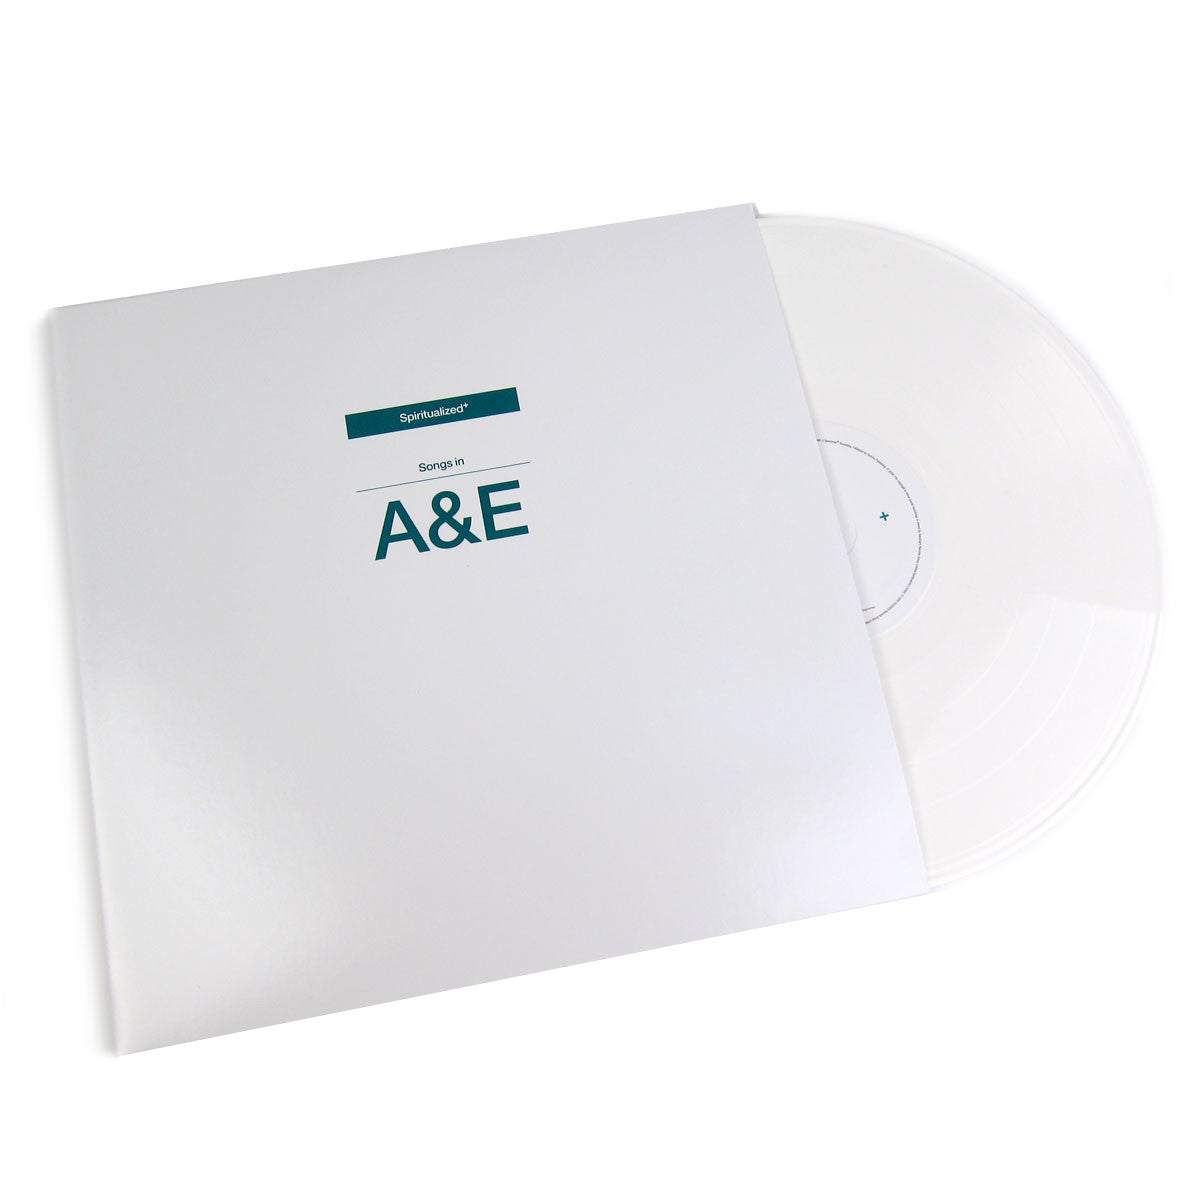 Spiritualized: Songs In A&E (Colored Vinyl) Vinyl 2LP